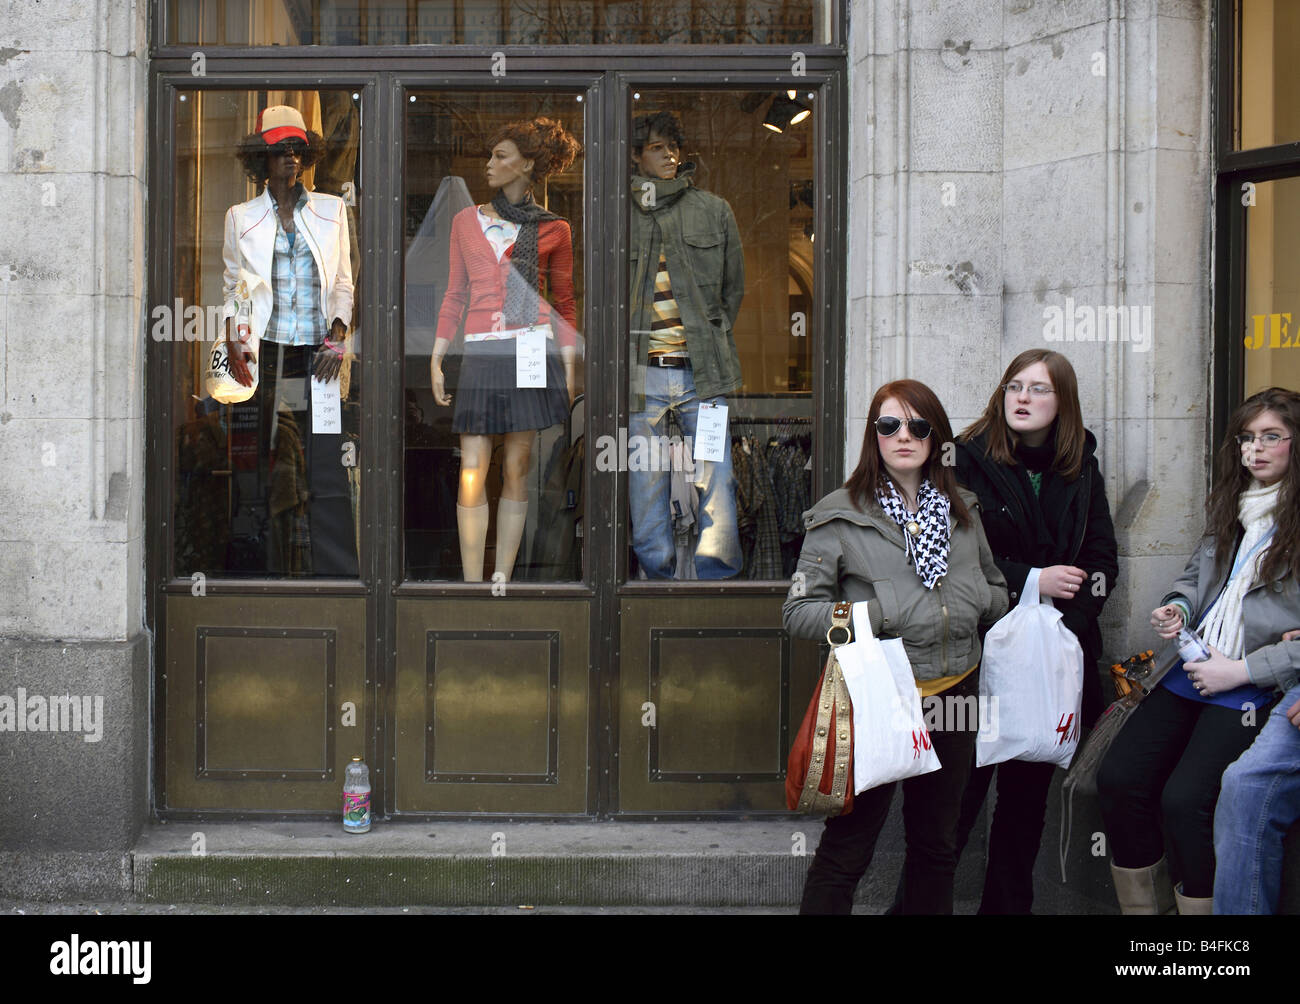 Girls in front of a shop window of H&M at the Kurfuerstendamm, Berlin, Germany - Stock Image